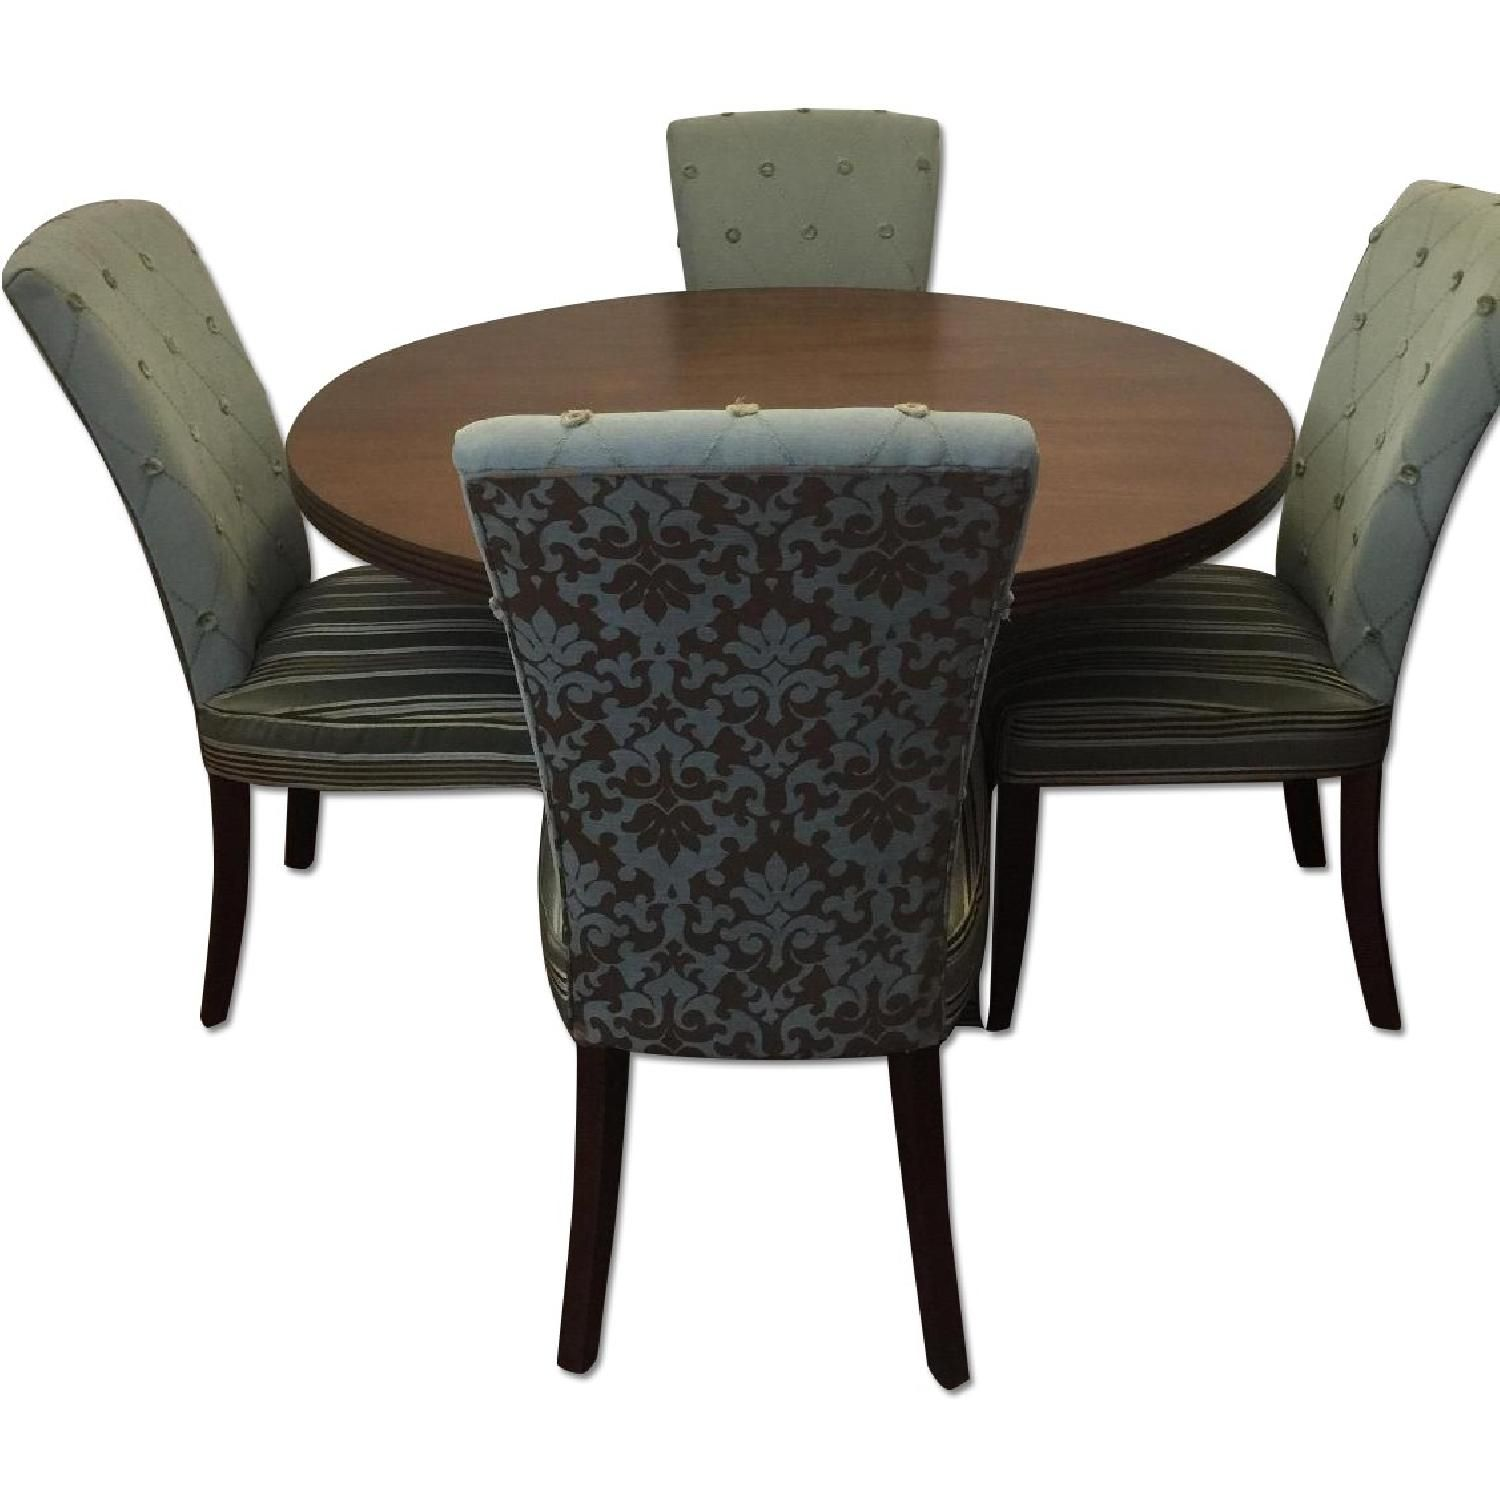 Pier 1 Dining Chairs Reviews